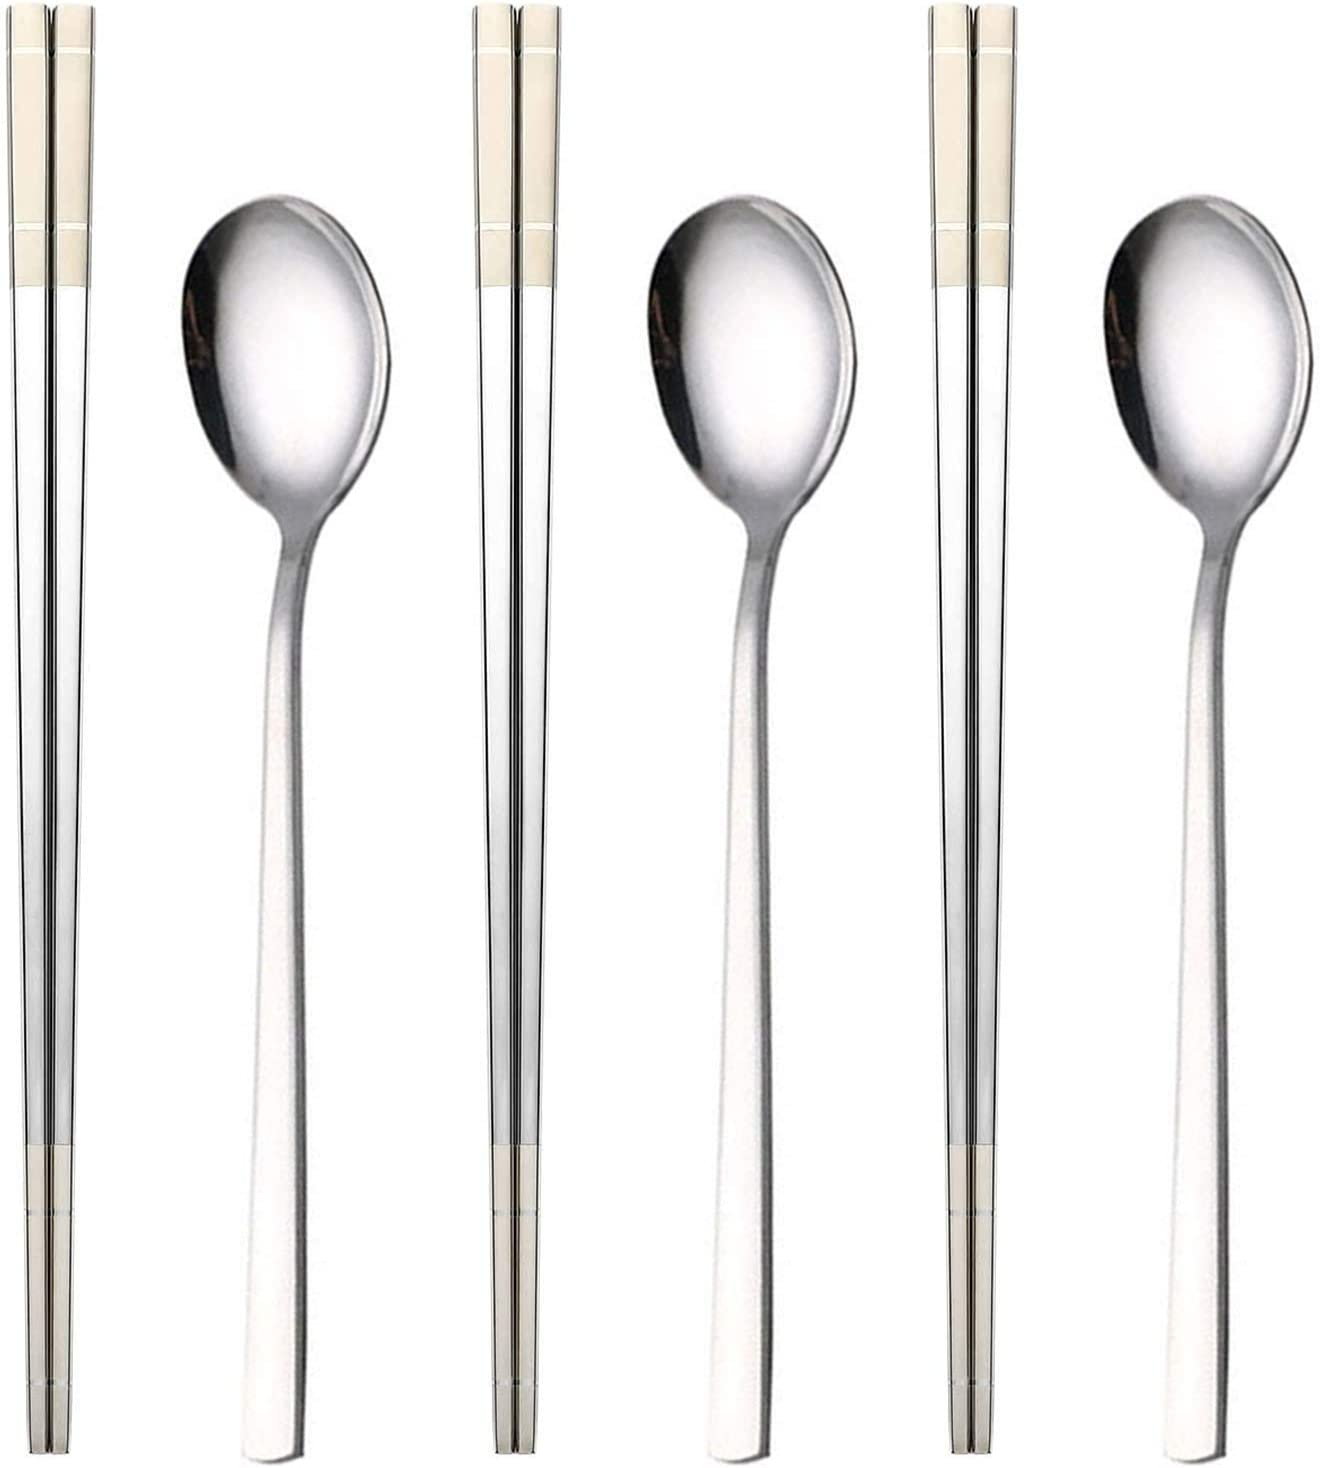 Tibitdeer/Titanium Spoon/Strong Ultra Lightweight Ti /2 Pack Dishwasher Safe /&Healthy Reusable Titanium Utility Cutlery Set/for Travel//Camping/Everyday Use